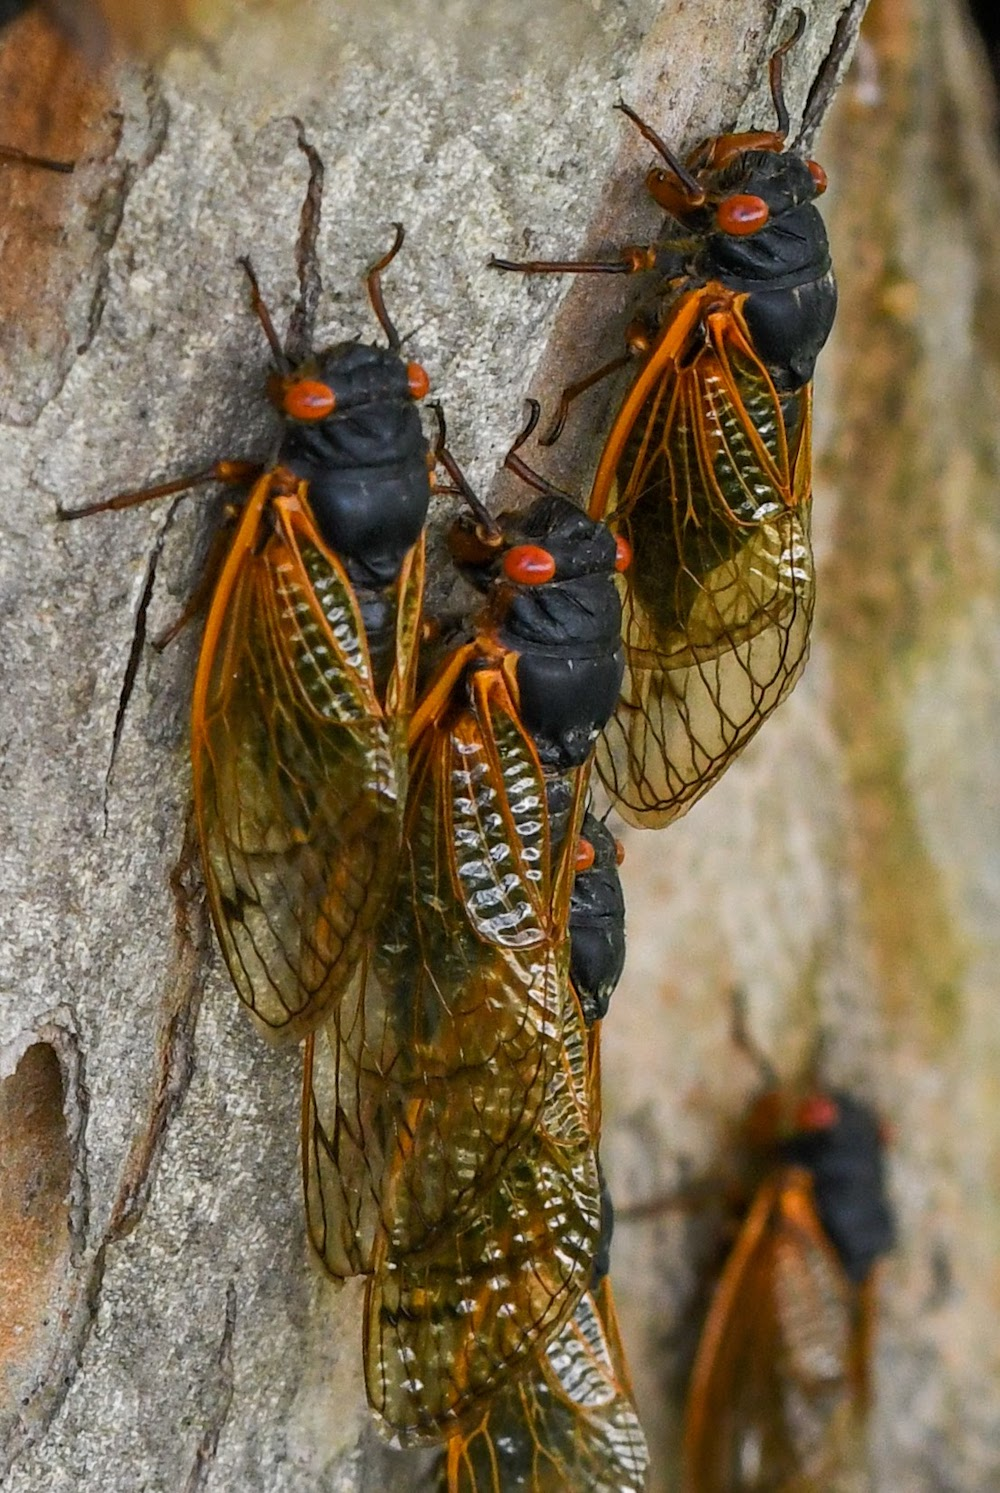 A group of cicada insects with orange wings and dark green bodies clinging to a trunk of a tree.